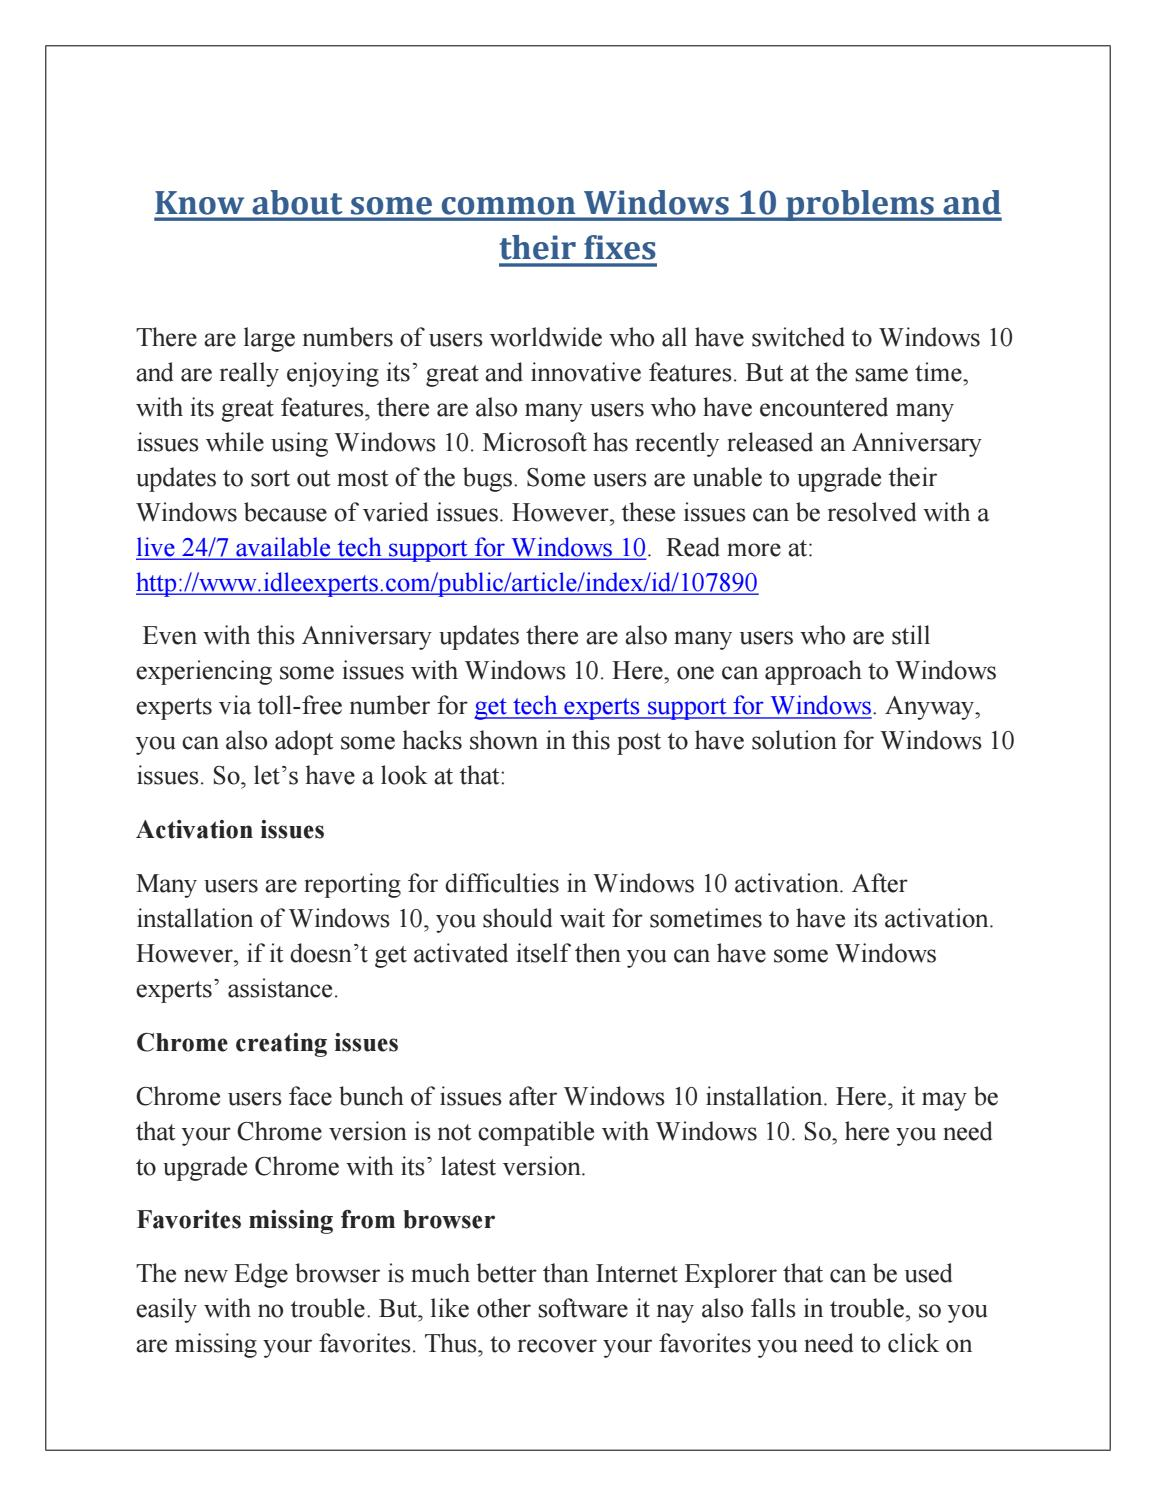 Know about some common windows 10 problems and their fixes